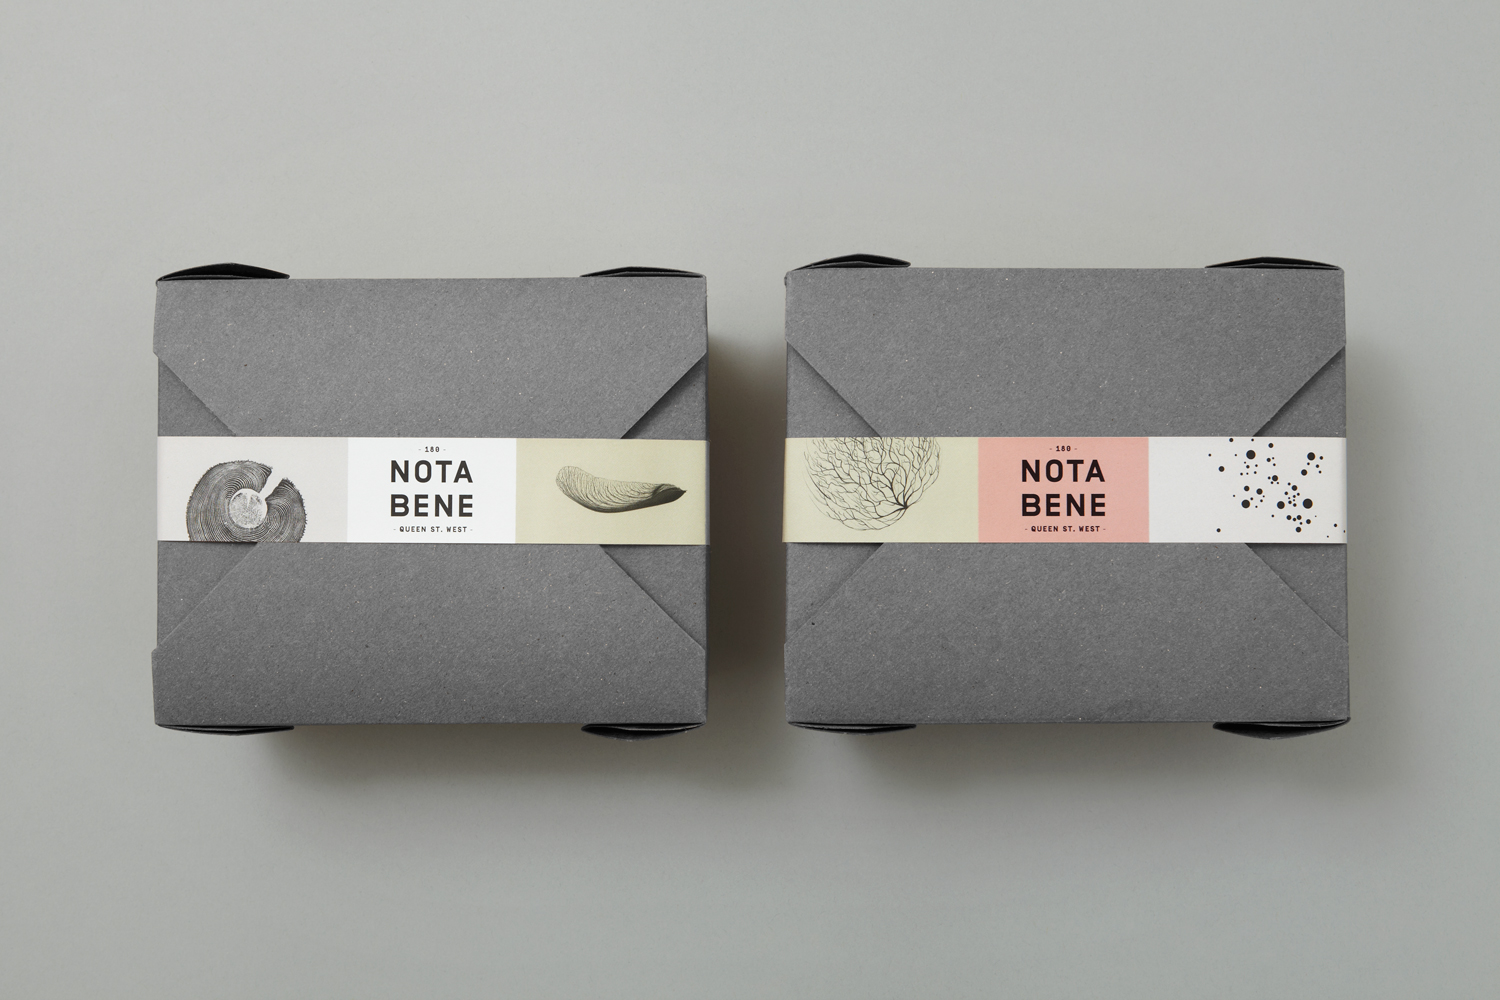 Brand identity and packaging for Toronto restaurant Nota Bene by graphic design studio Blok, Canada